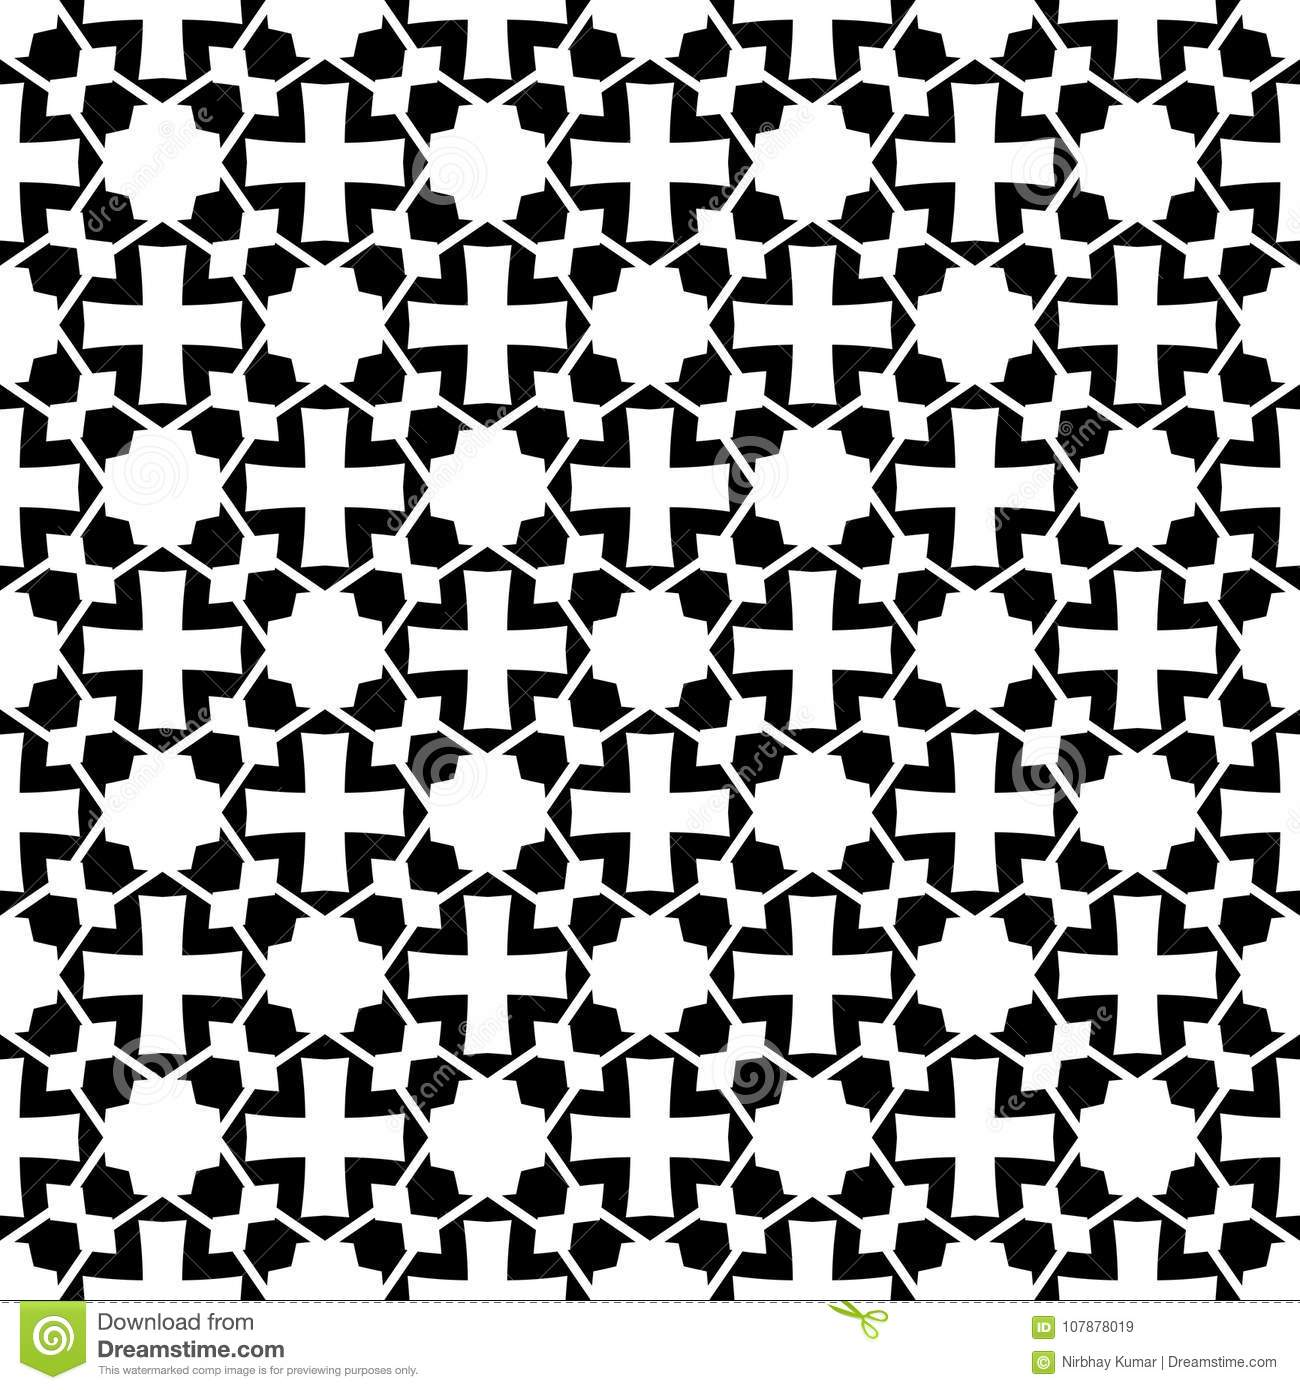 Great Wallpaper Home Screen Black And White - pattern-website-background-wallpaper-screen-sever-book-cover-printing-laser-cutting-designs-vector-black-white-107878019  Collection_182652.jpg